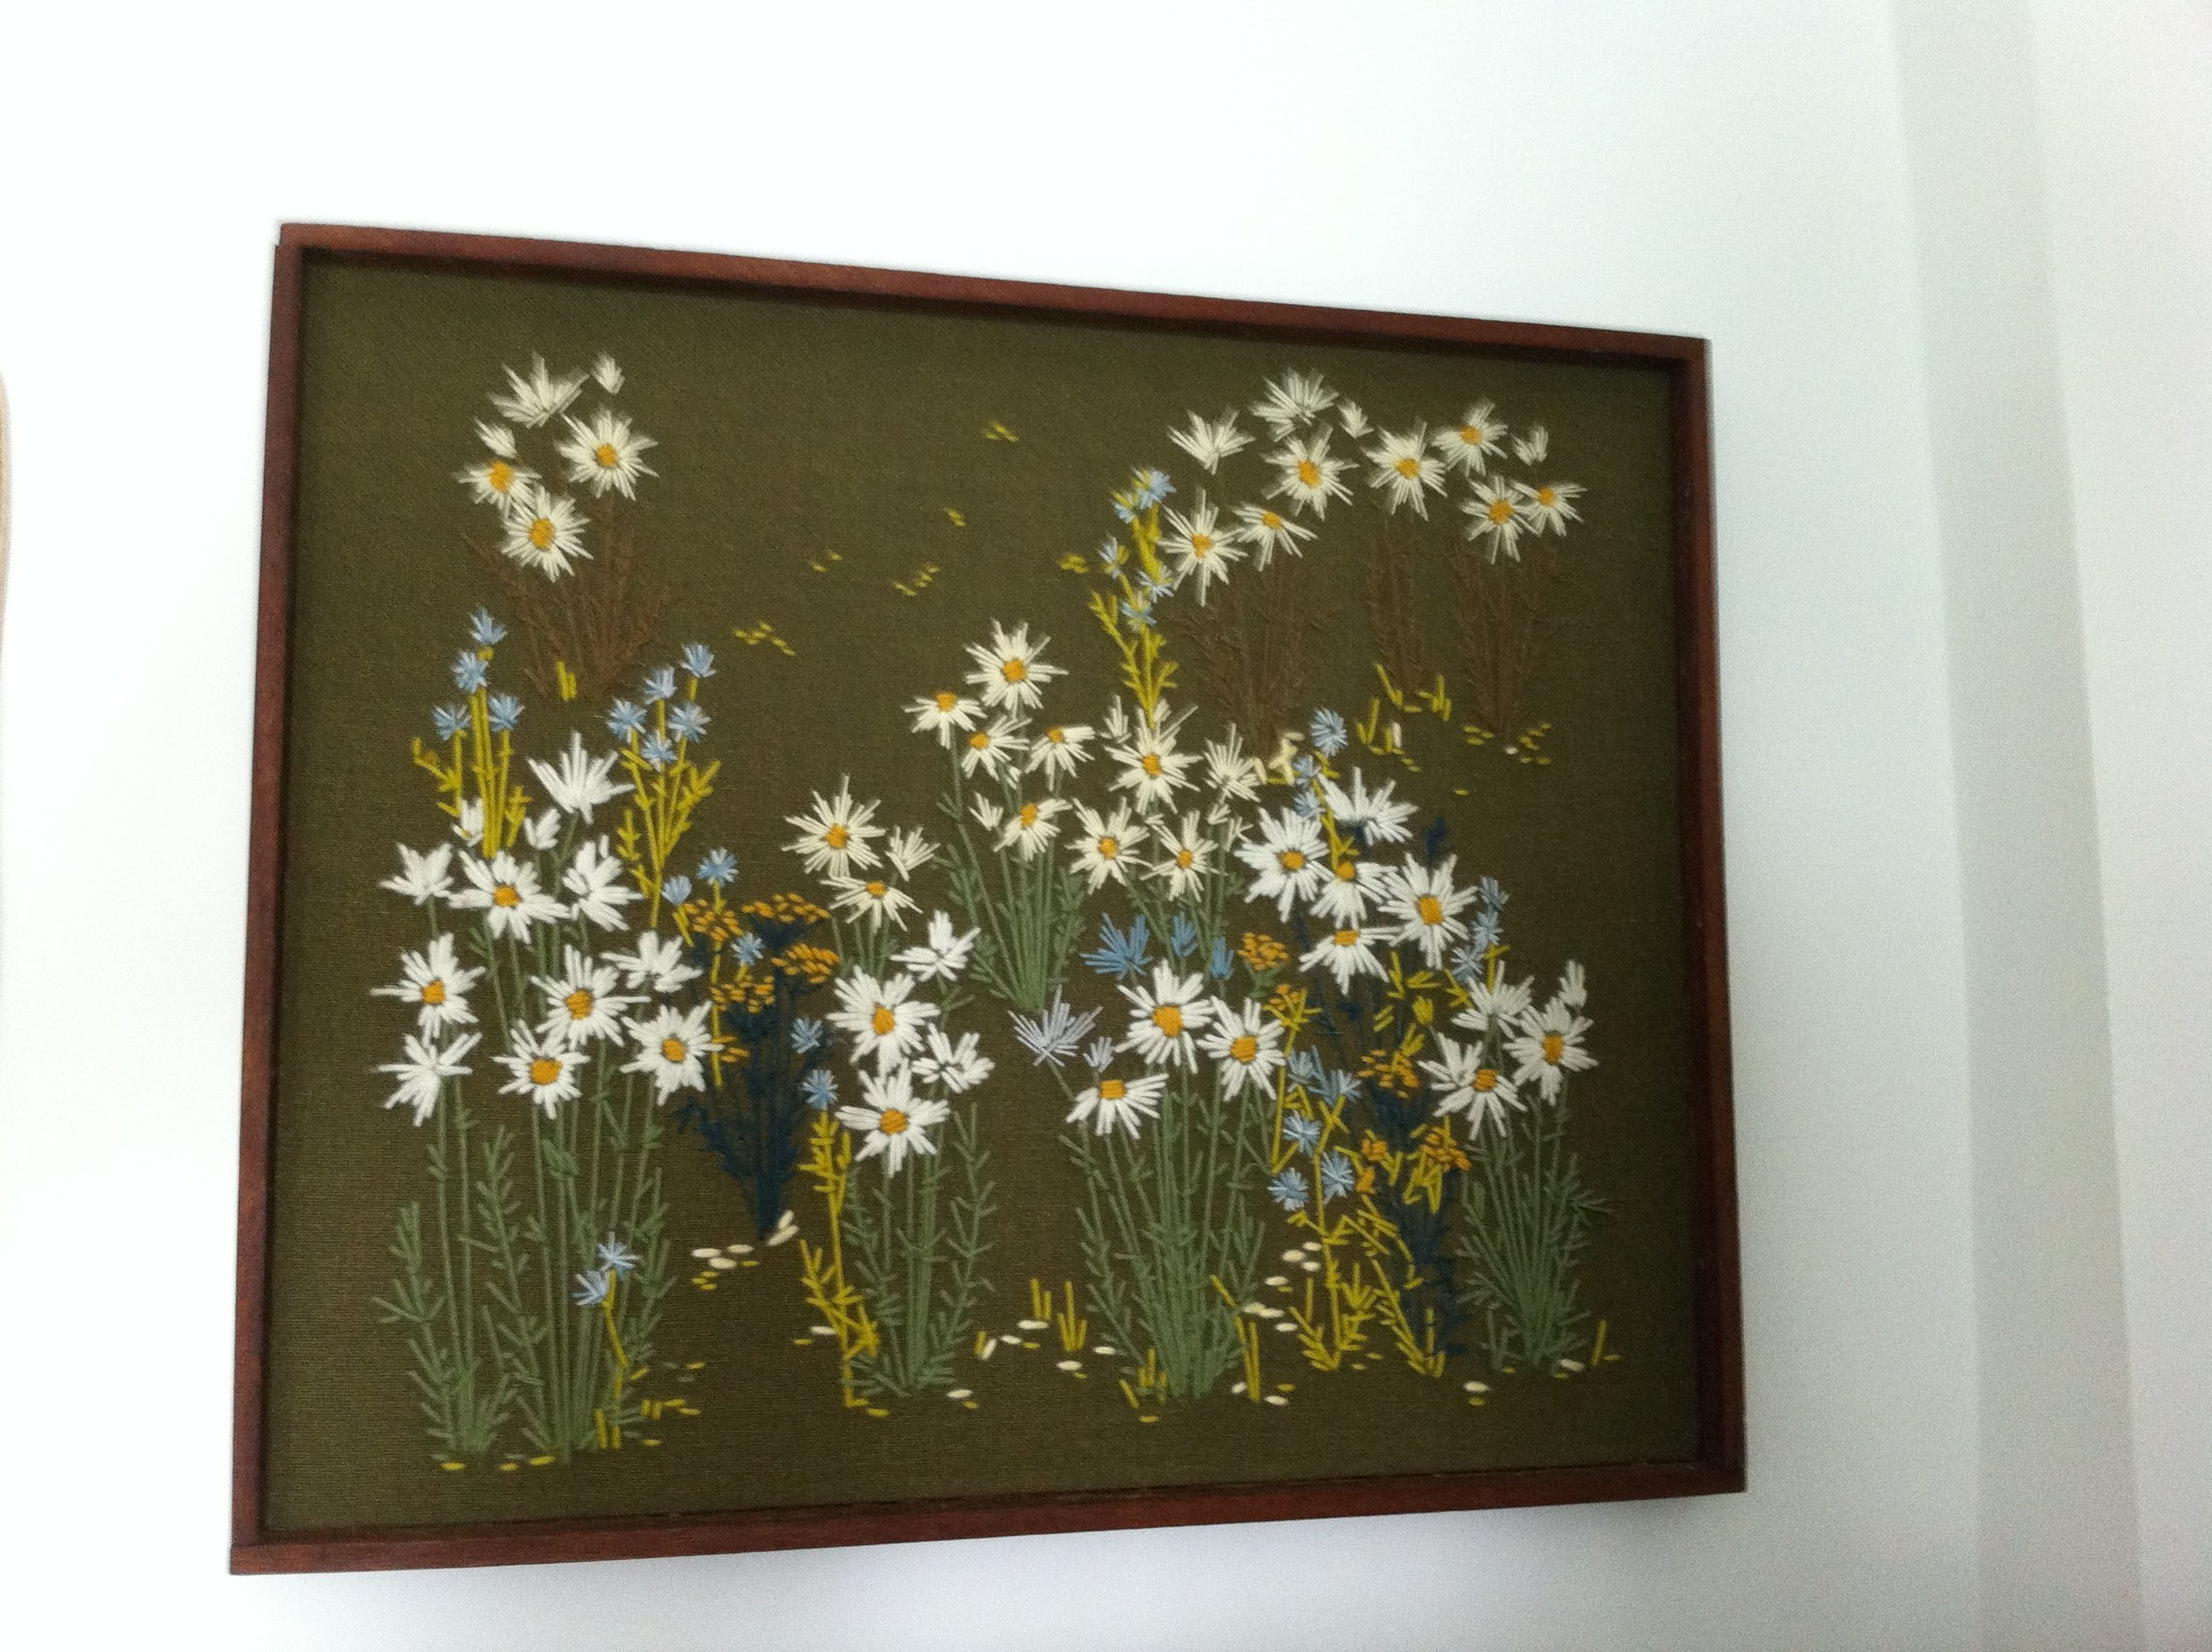 A pic of yarn art featuring daisies on olive green linen background framed in teak.